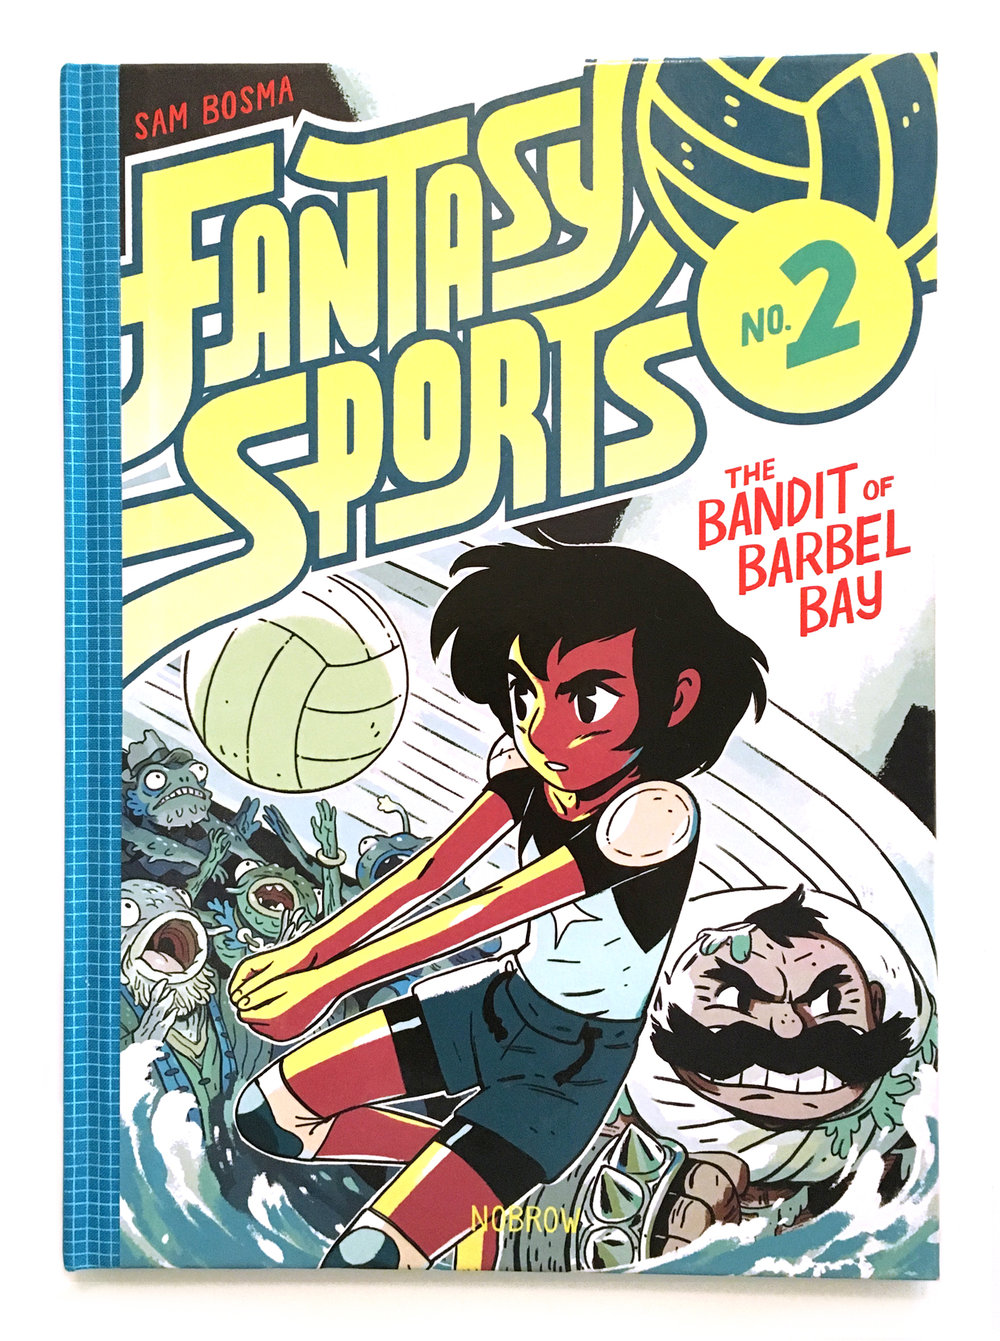 Fantasy Sports #2: The Bandit of Barbel Bay